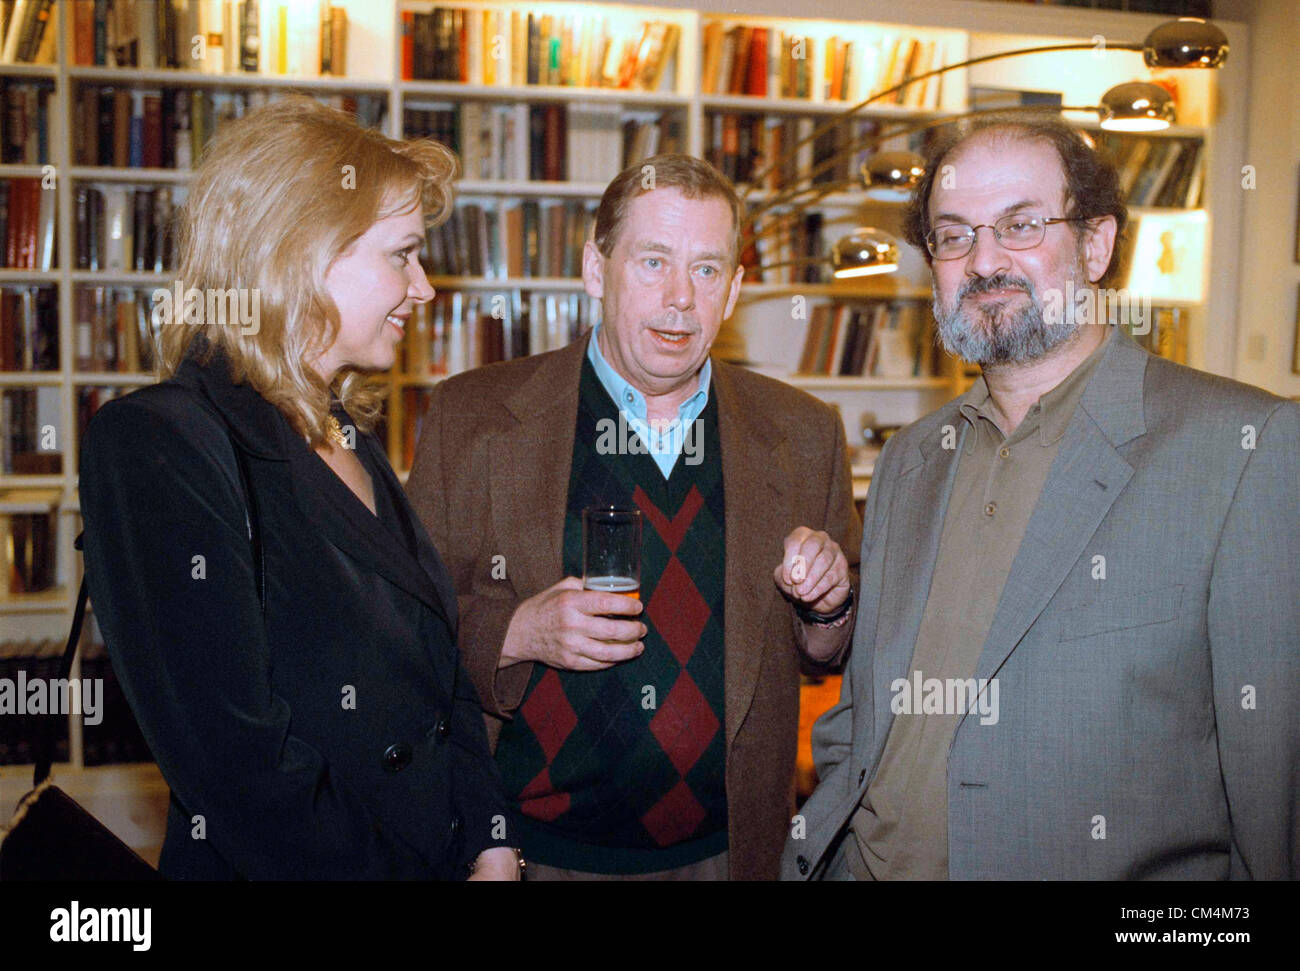 ***FILE PHOTO***The author Salman Rushdie (left), president of the Czech Republic Vaclav Havel (middle) and his - Stock Image